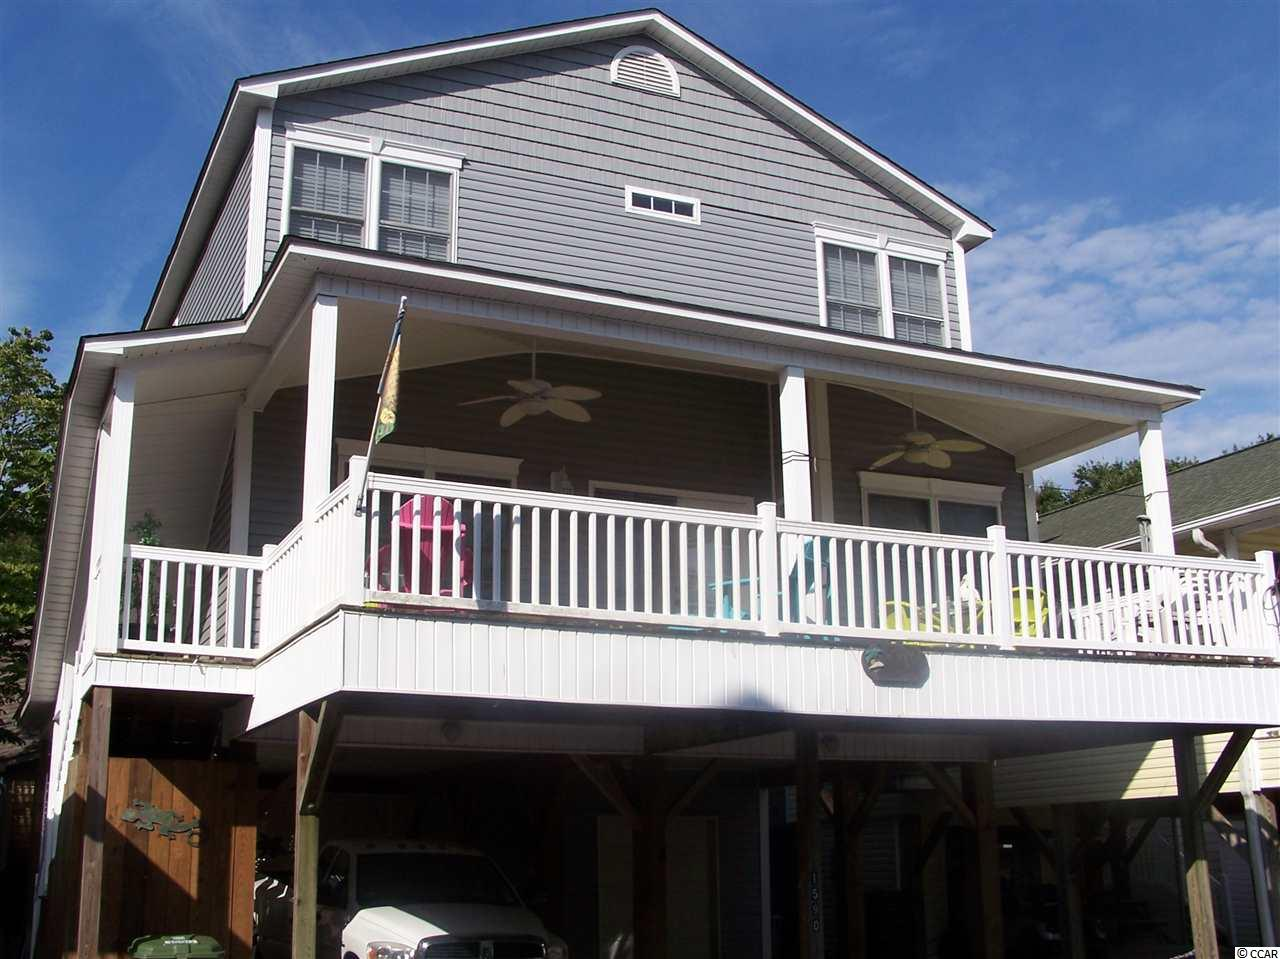 """Enjoy worry free living in Myrtle Beach living. 24 hour Property security, NO beach parking meters, waterpark, pools, arcades, fun for the entire family. Ocean Lakes is an award winning community located on the shores of the Atlantic Ocean. The home comes fully furnished.  You will notice this is not your average """"Rental Unit"""" furniture.   These are upscale pieces typically reserved  for your primary residence. Five bedrooms...something for everyone.  Even the golf cart is included. Don't look in Ocean Lakes without considering this home."""